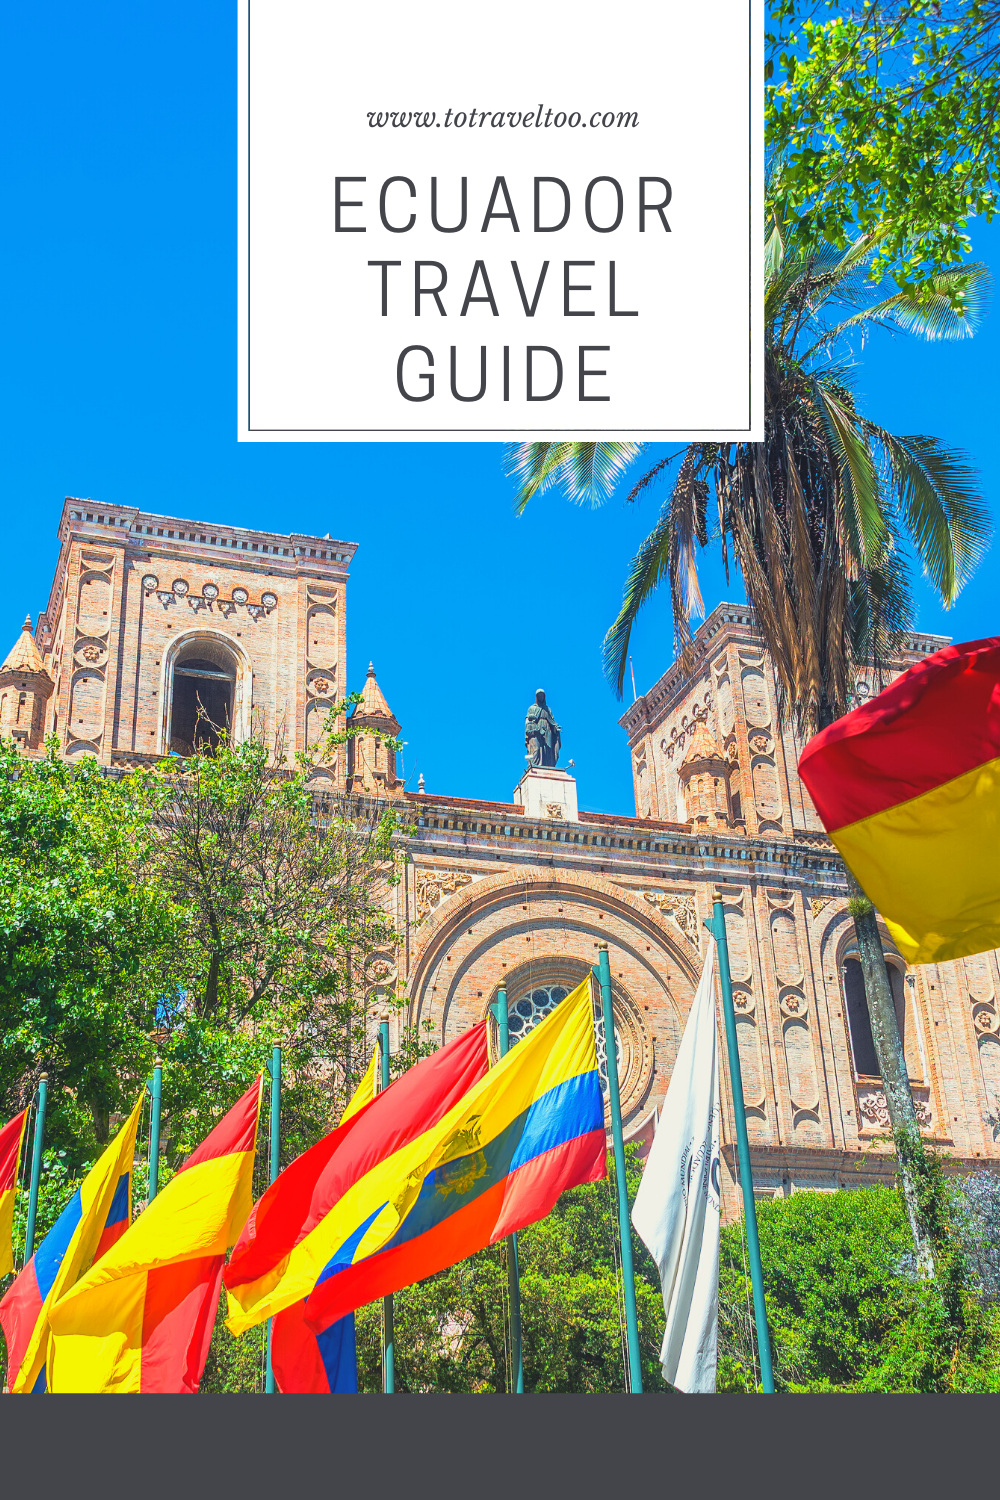 Discover Ecuador and its top places to visit - Quito, Amazon Jungle, Galapagos Islands, Canoa, Otavalo, Guayaquil and Cuenca